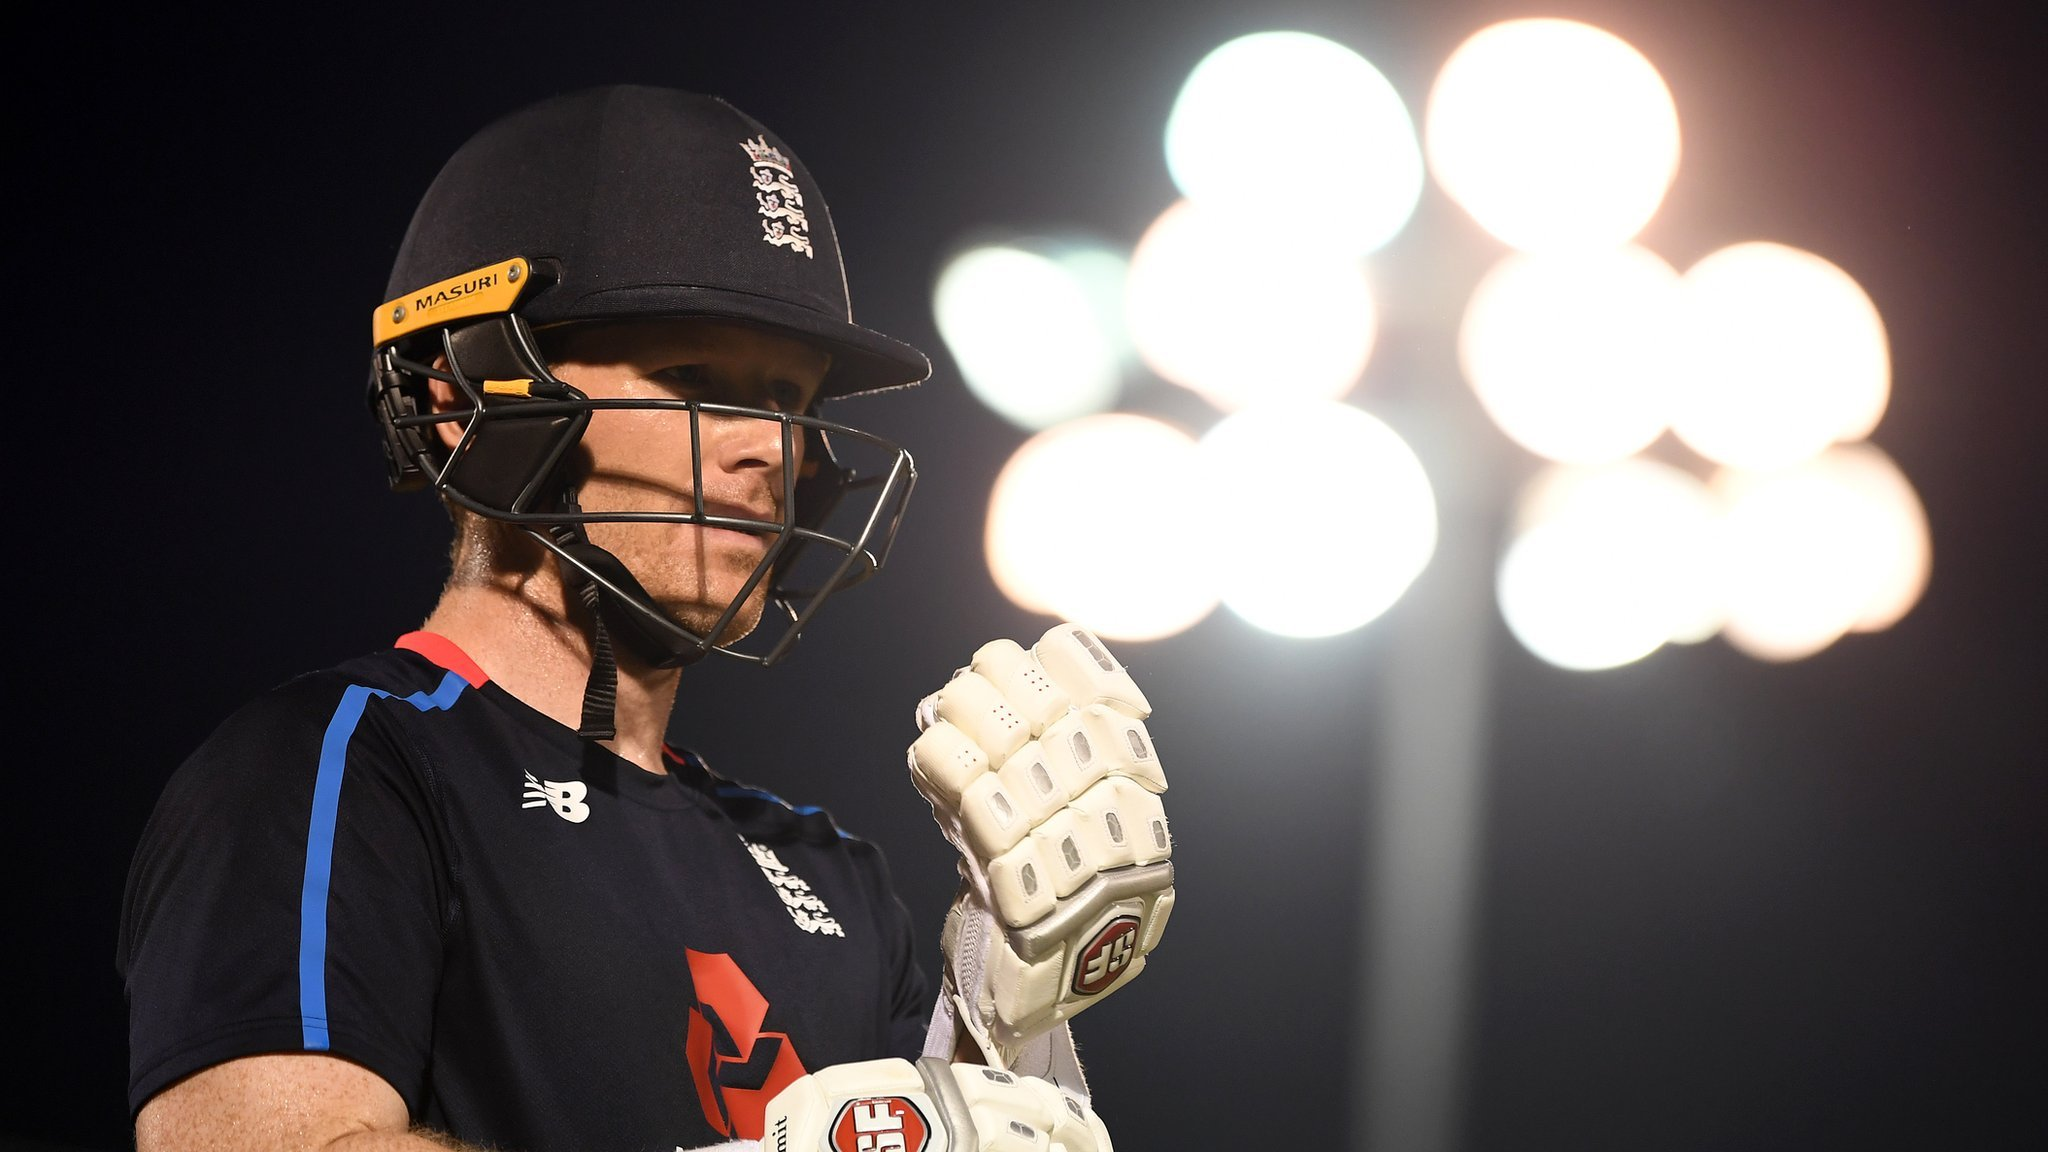 Cricket World Cup: How do England stand before this summer's tournament?